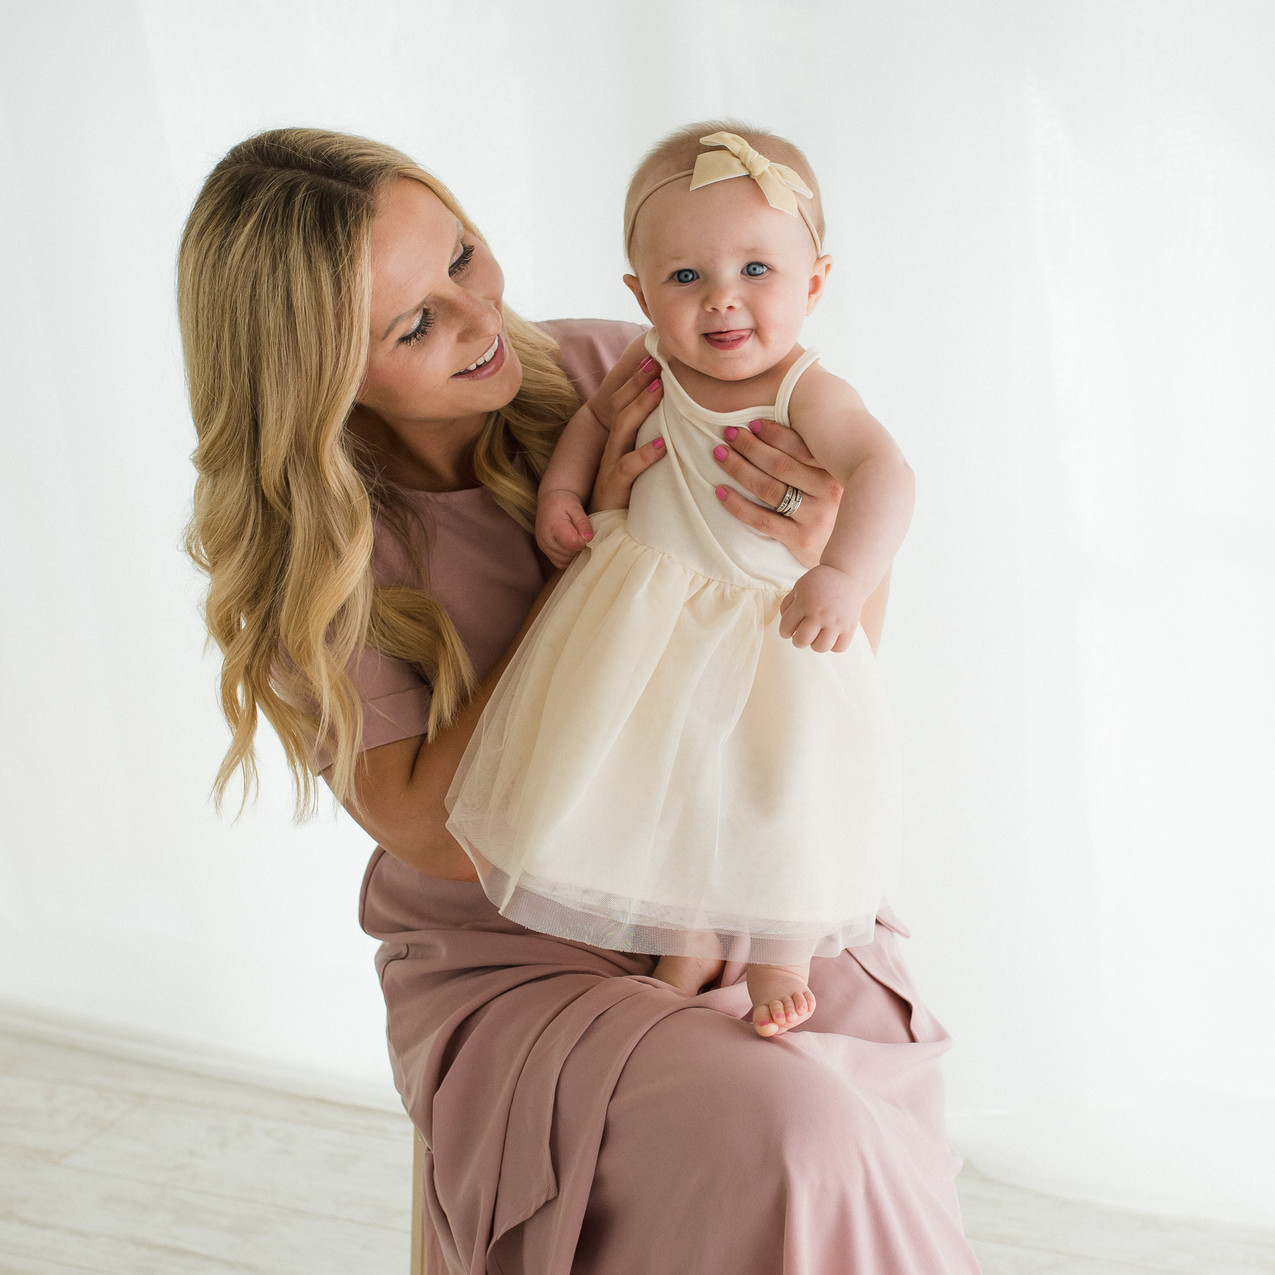 20C-Photographer-Baby-Sitter-Session-6mo